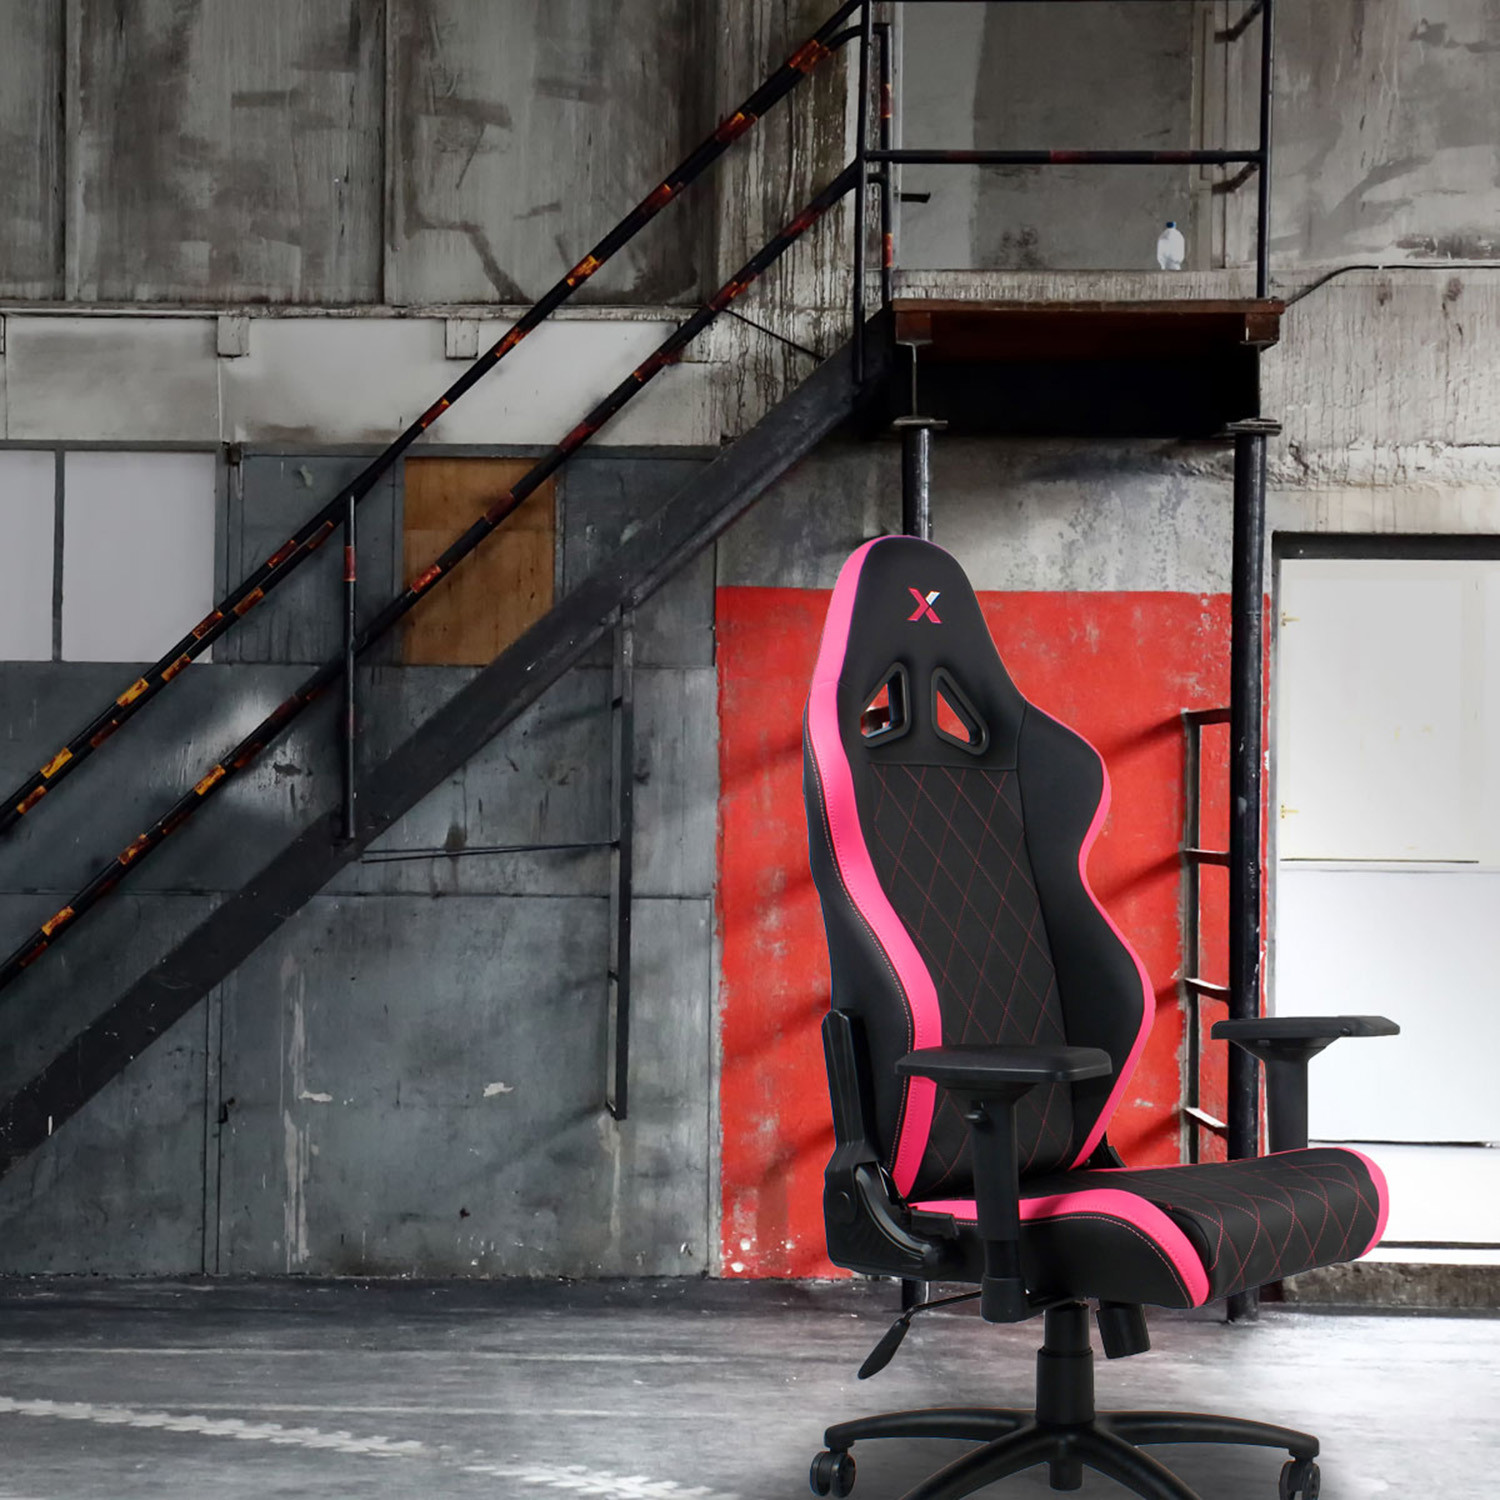 Groovy Ferrino Gaming Chair Black Pink Global Ttc Touch Machost Co Dining Chair Design Ideas Machostcouk